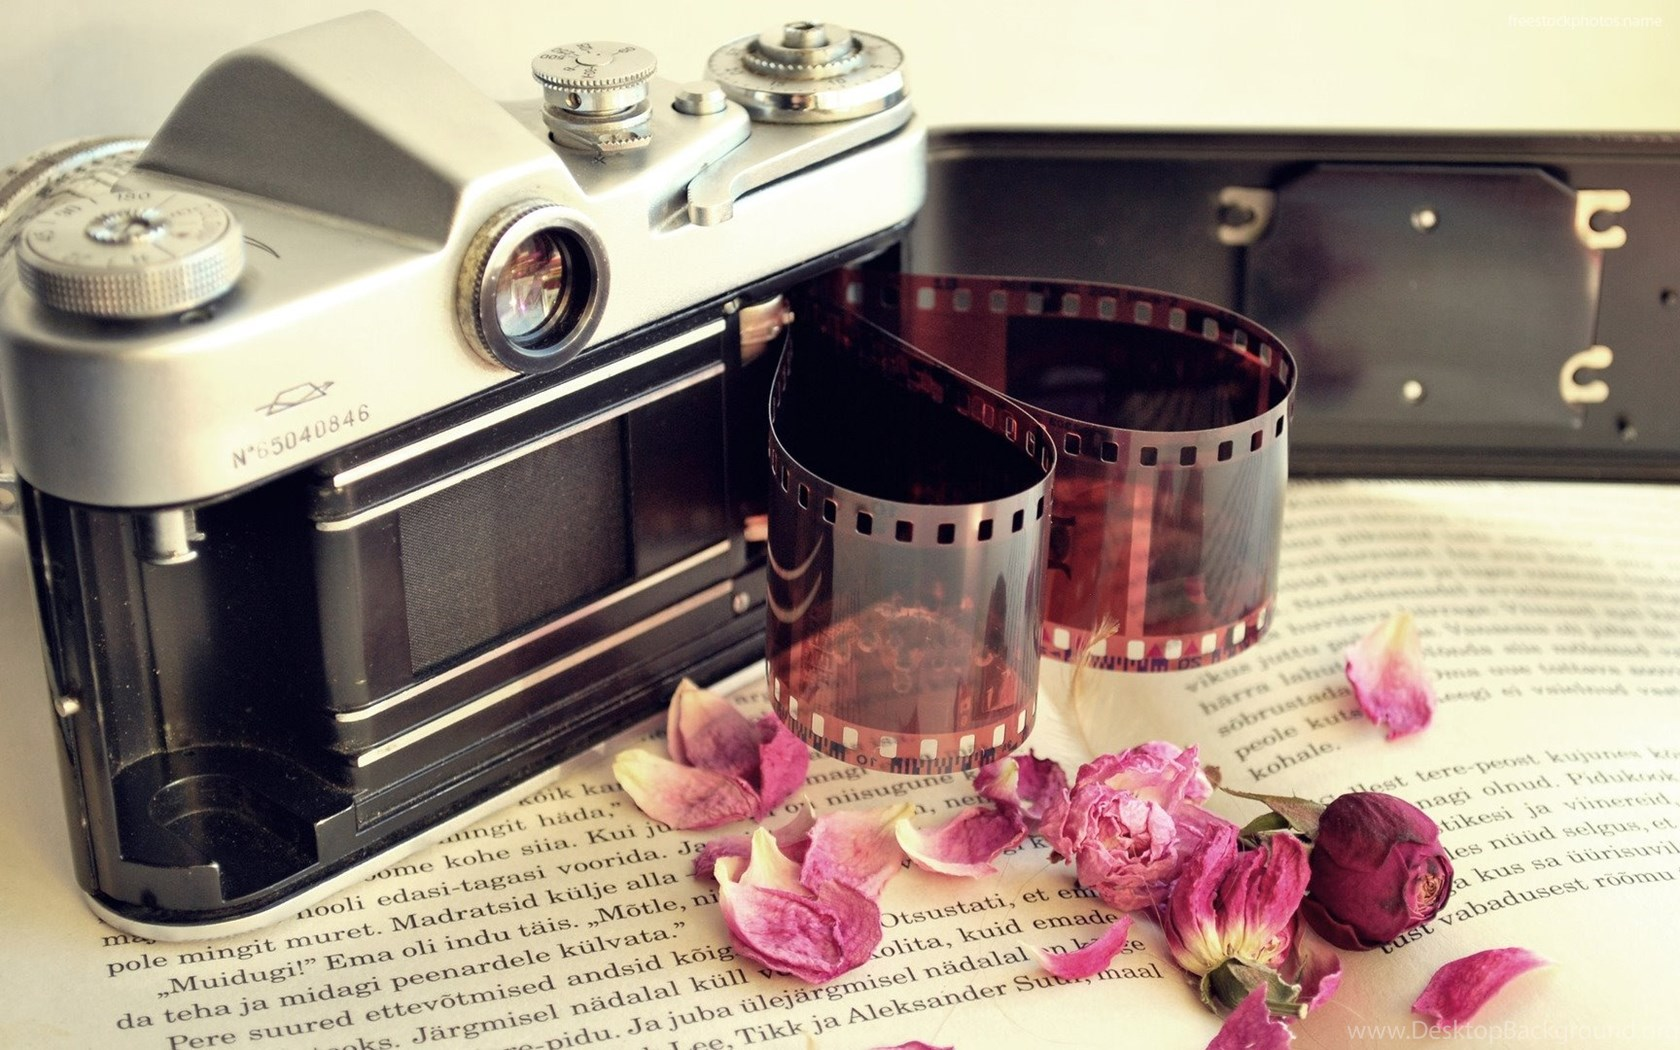 Download Stock Photos Of Download Vintage Camera Wallpaper